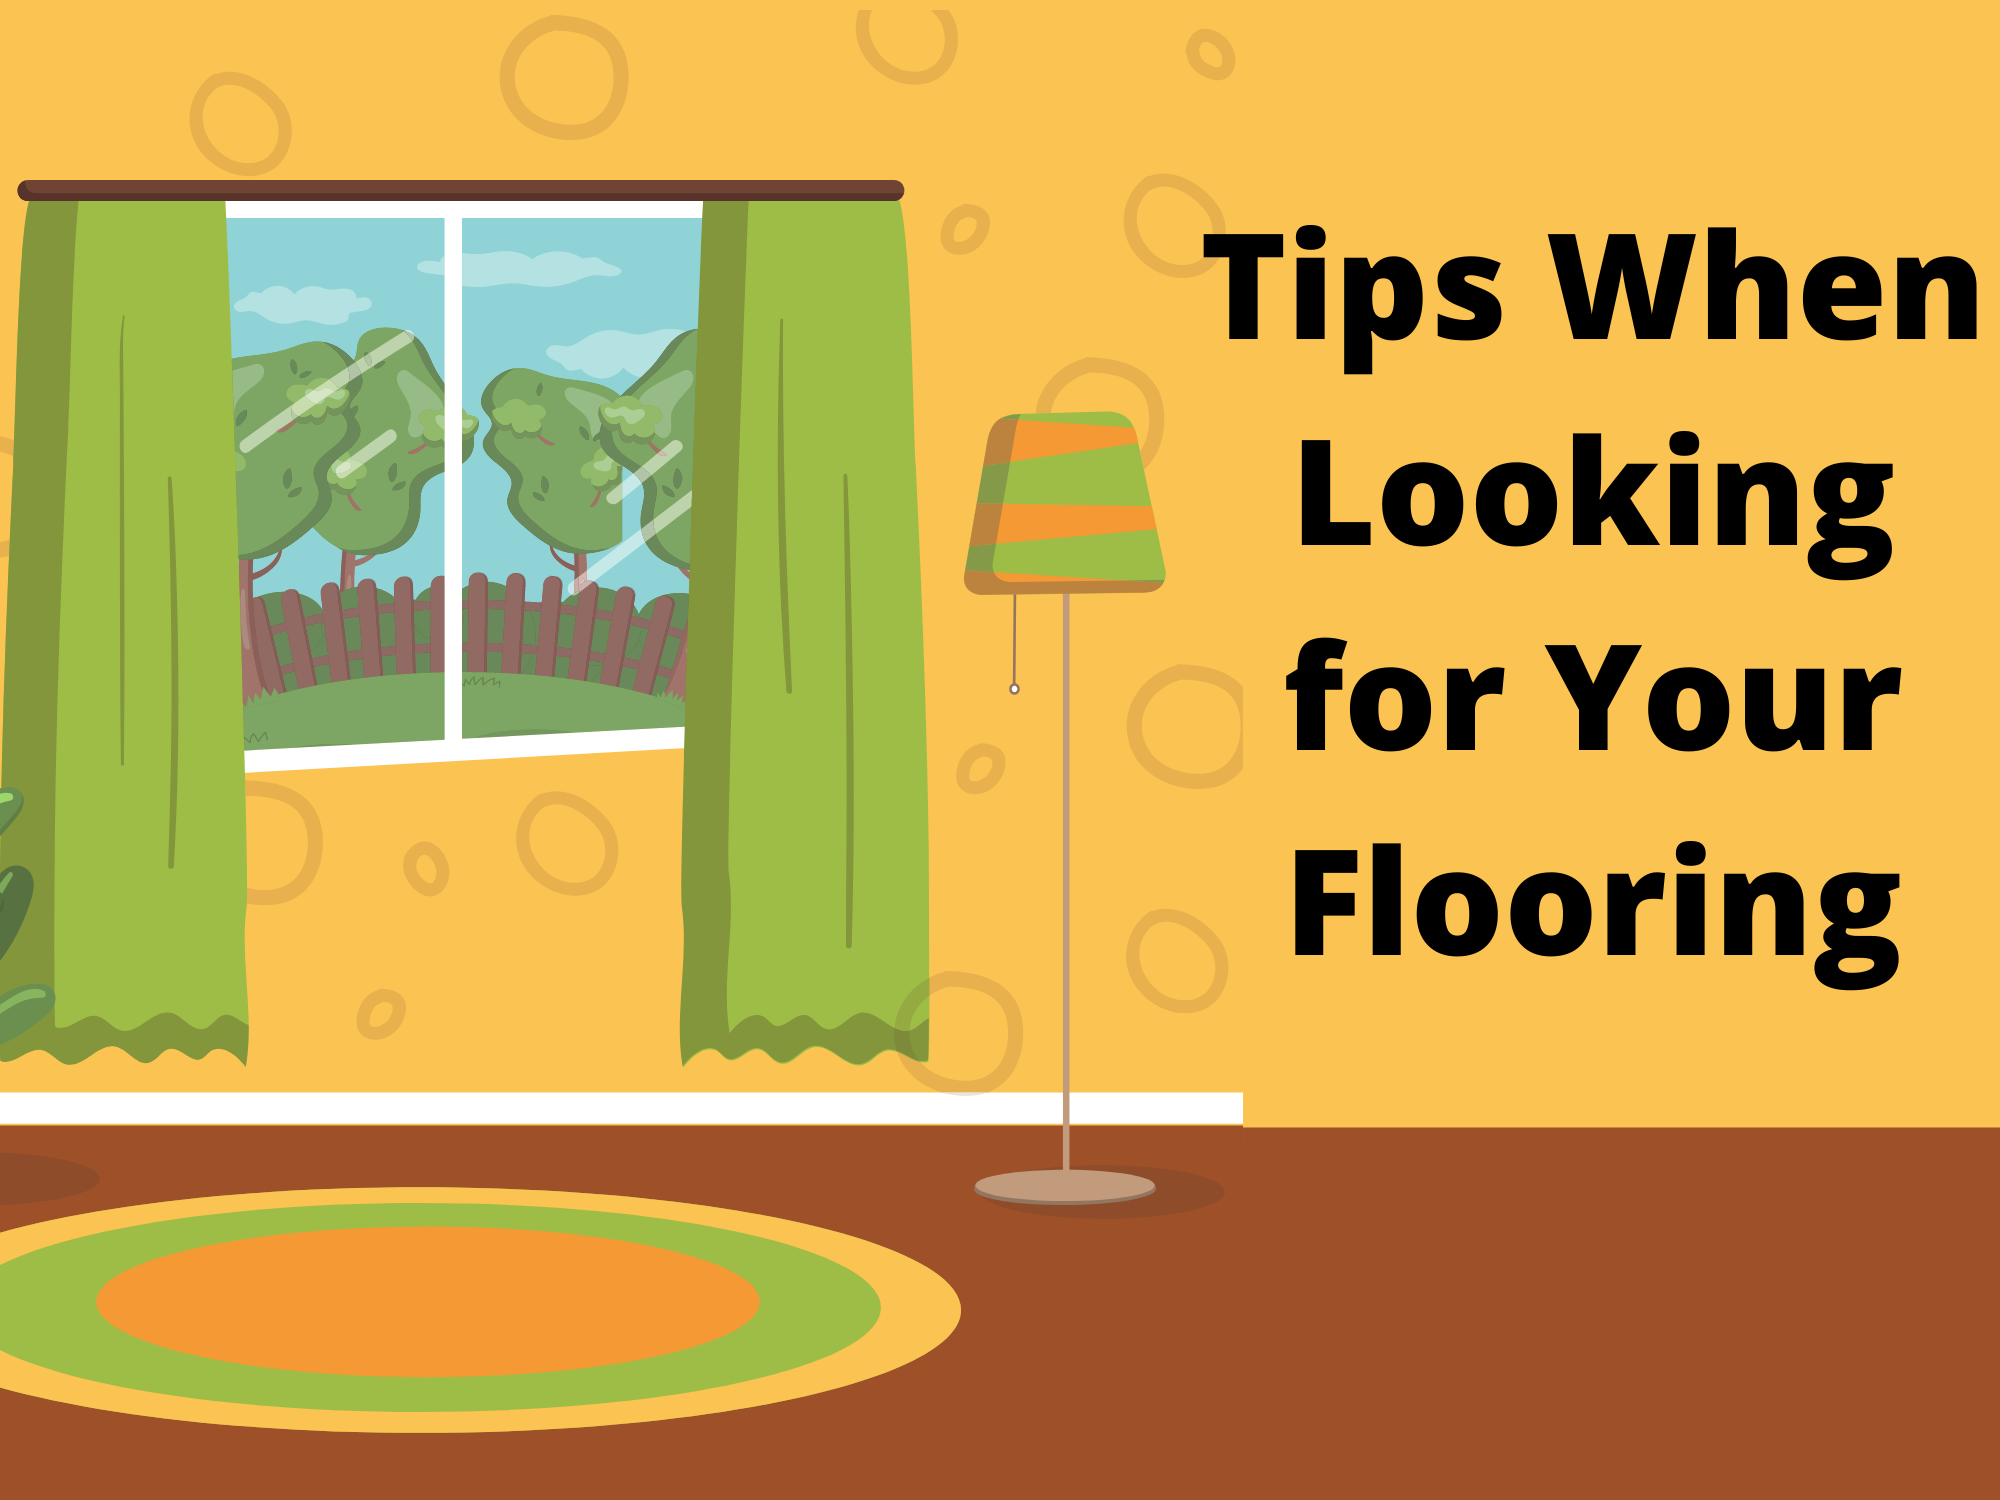 Tips-When-Looking-for-Your-Flooring